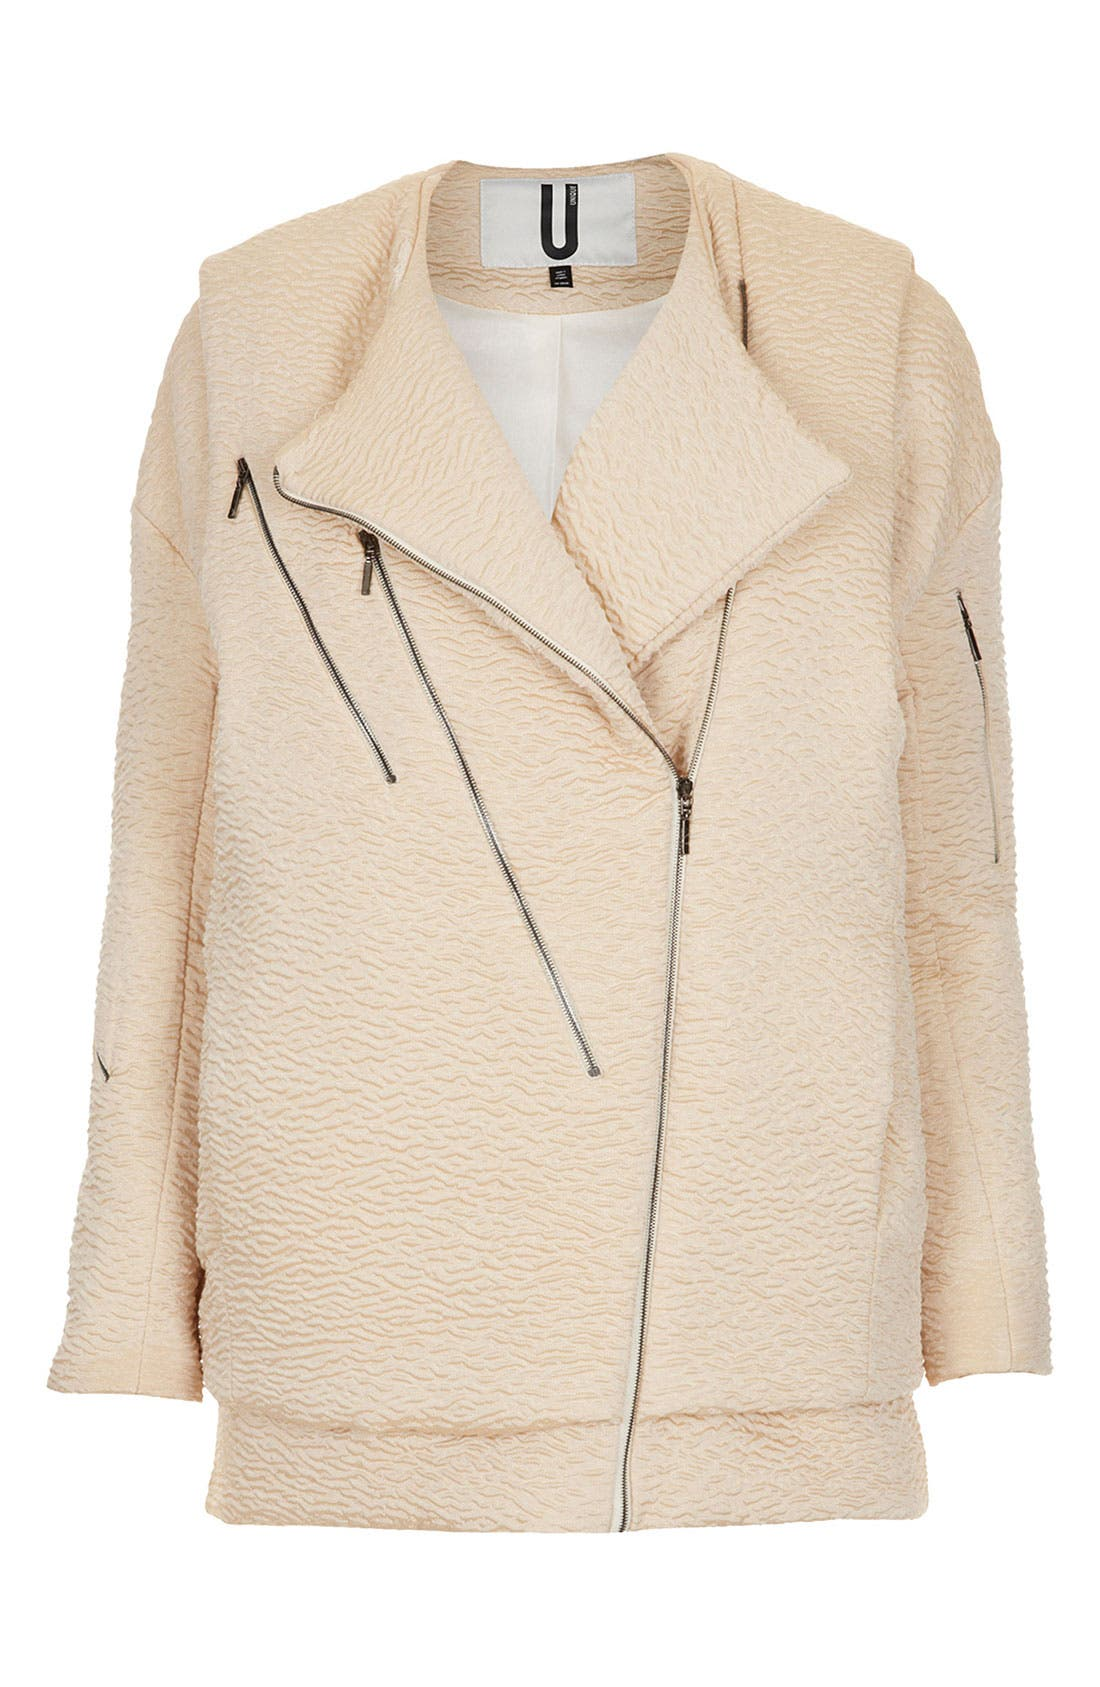 Alternate Image 1 Selected - Topshop Unique Textured Biker Jacket